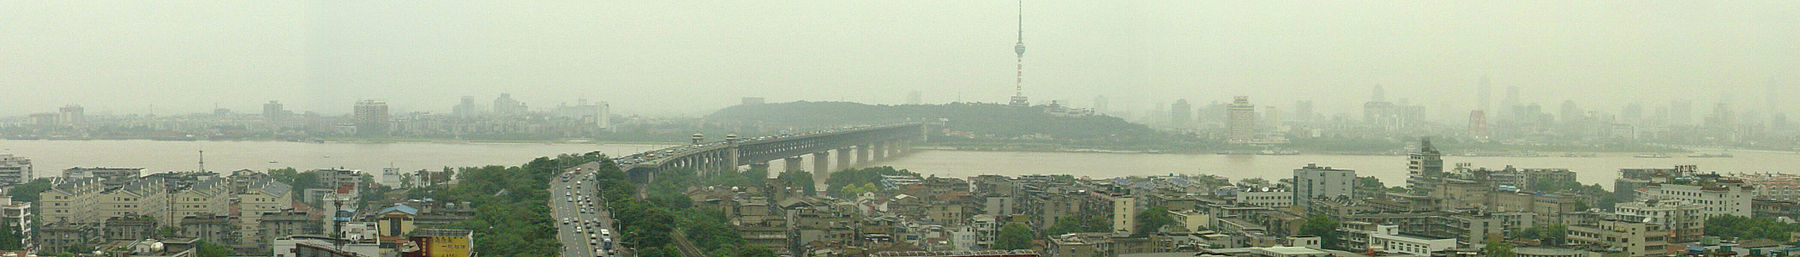 Wuhan banner Bridge over river.jpg